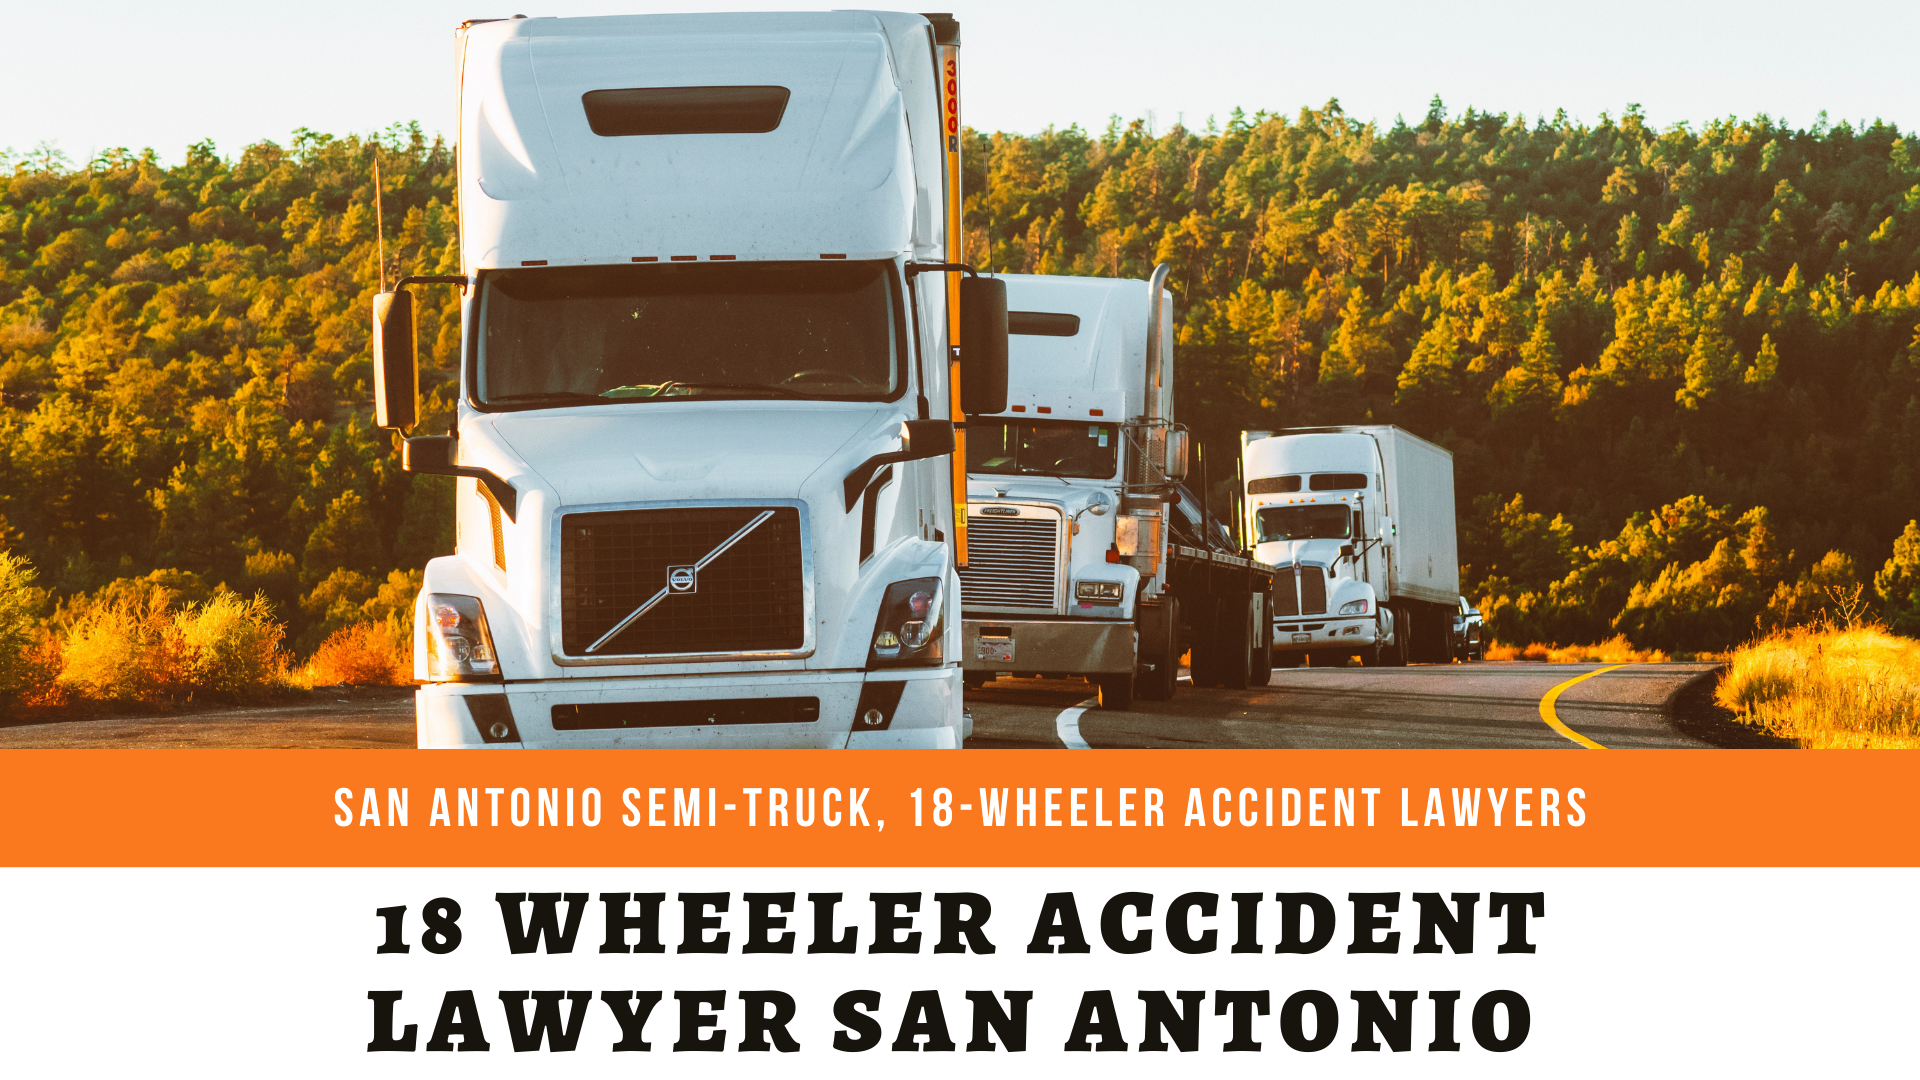 18 Wheeler Accident Lawyer San Antonio truck accident law firm | San Antonio 18-Wheeler Accident | The Law Offices of George …